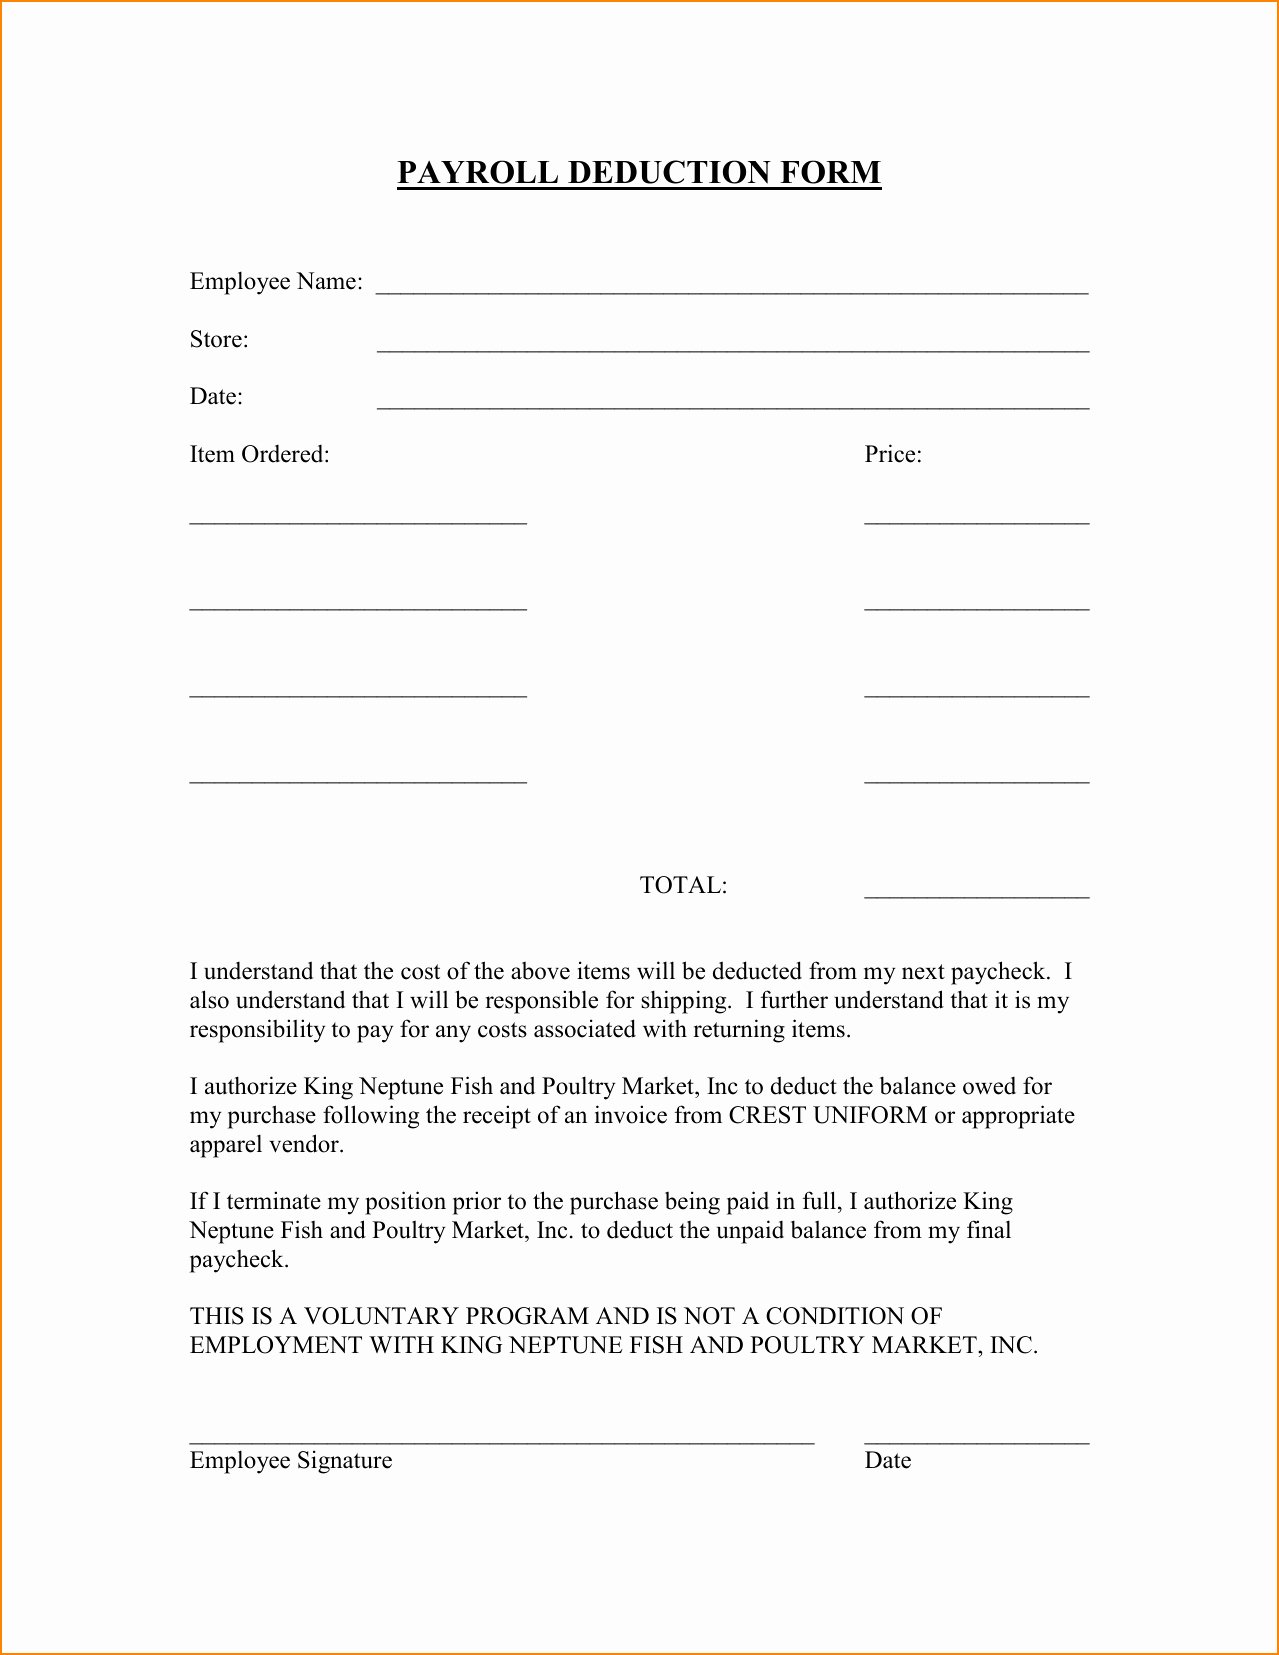 Payroll Deduction Authorization form Template New 12 Uniform Payroll Deduction form